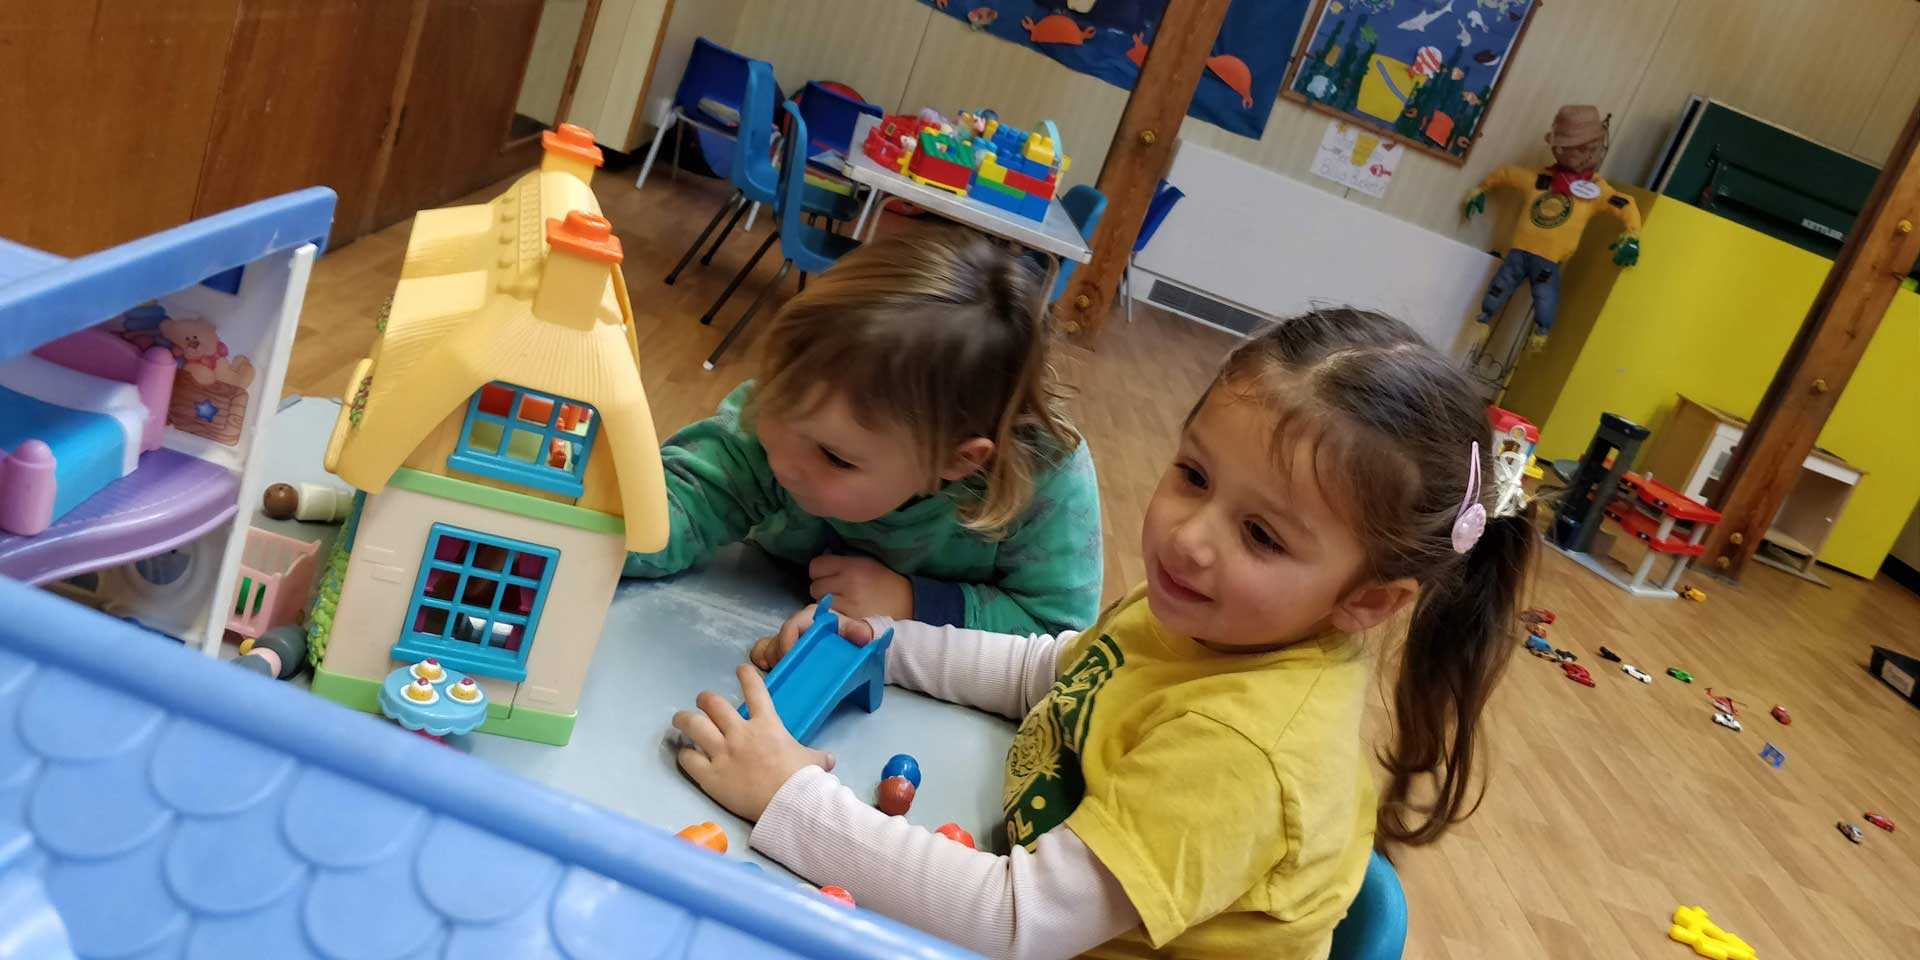 A girl and a boy playing together at a table at Rottingdean Whiteway Pre-School